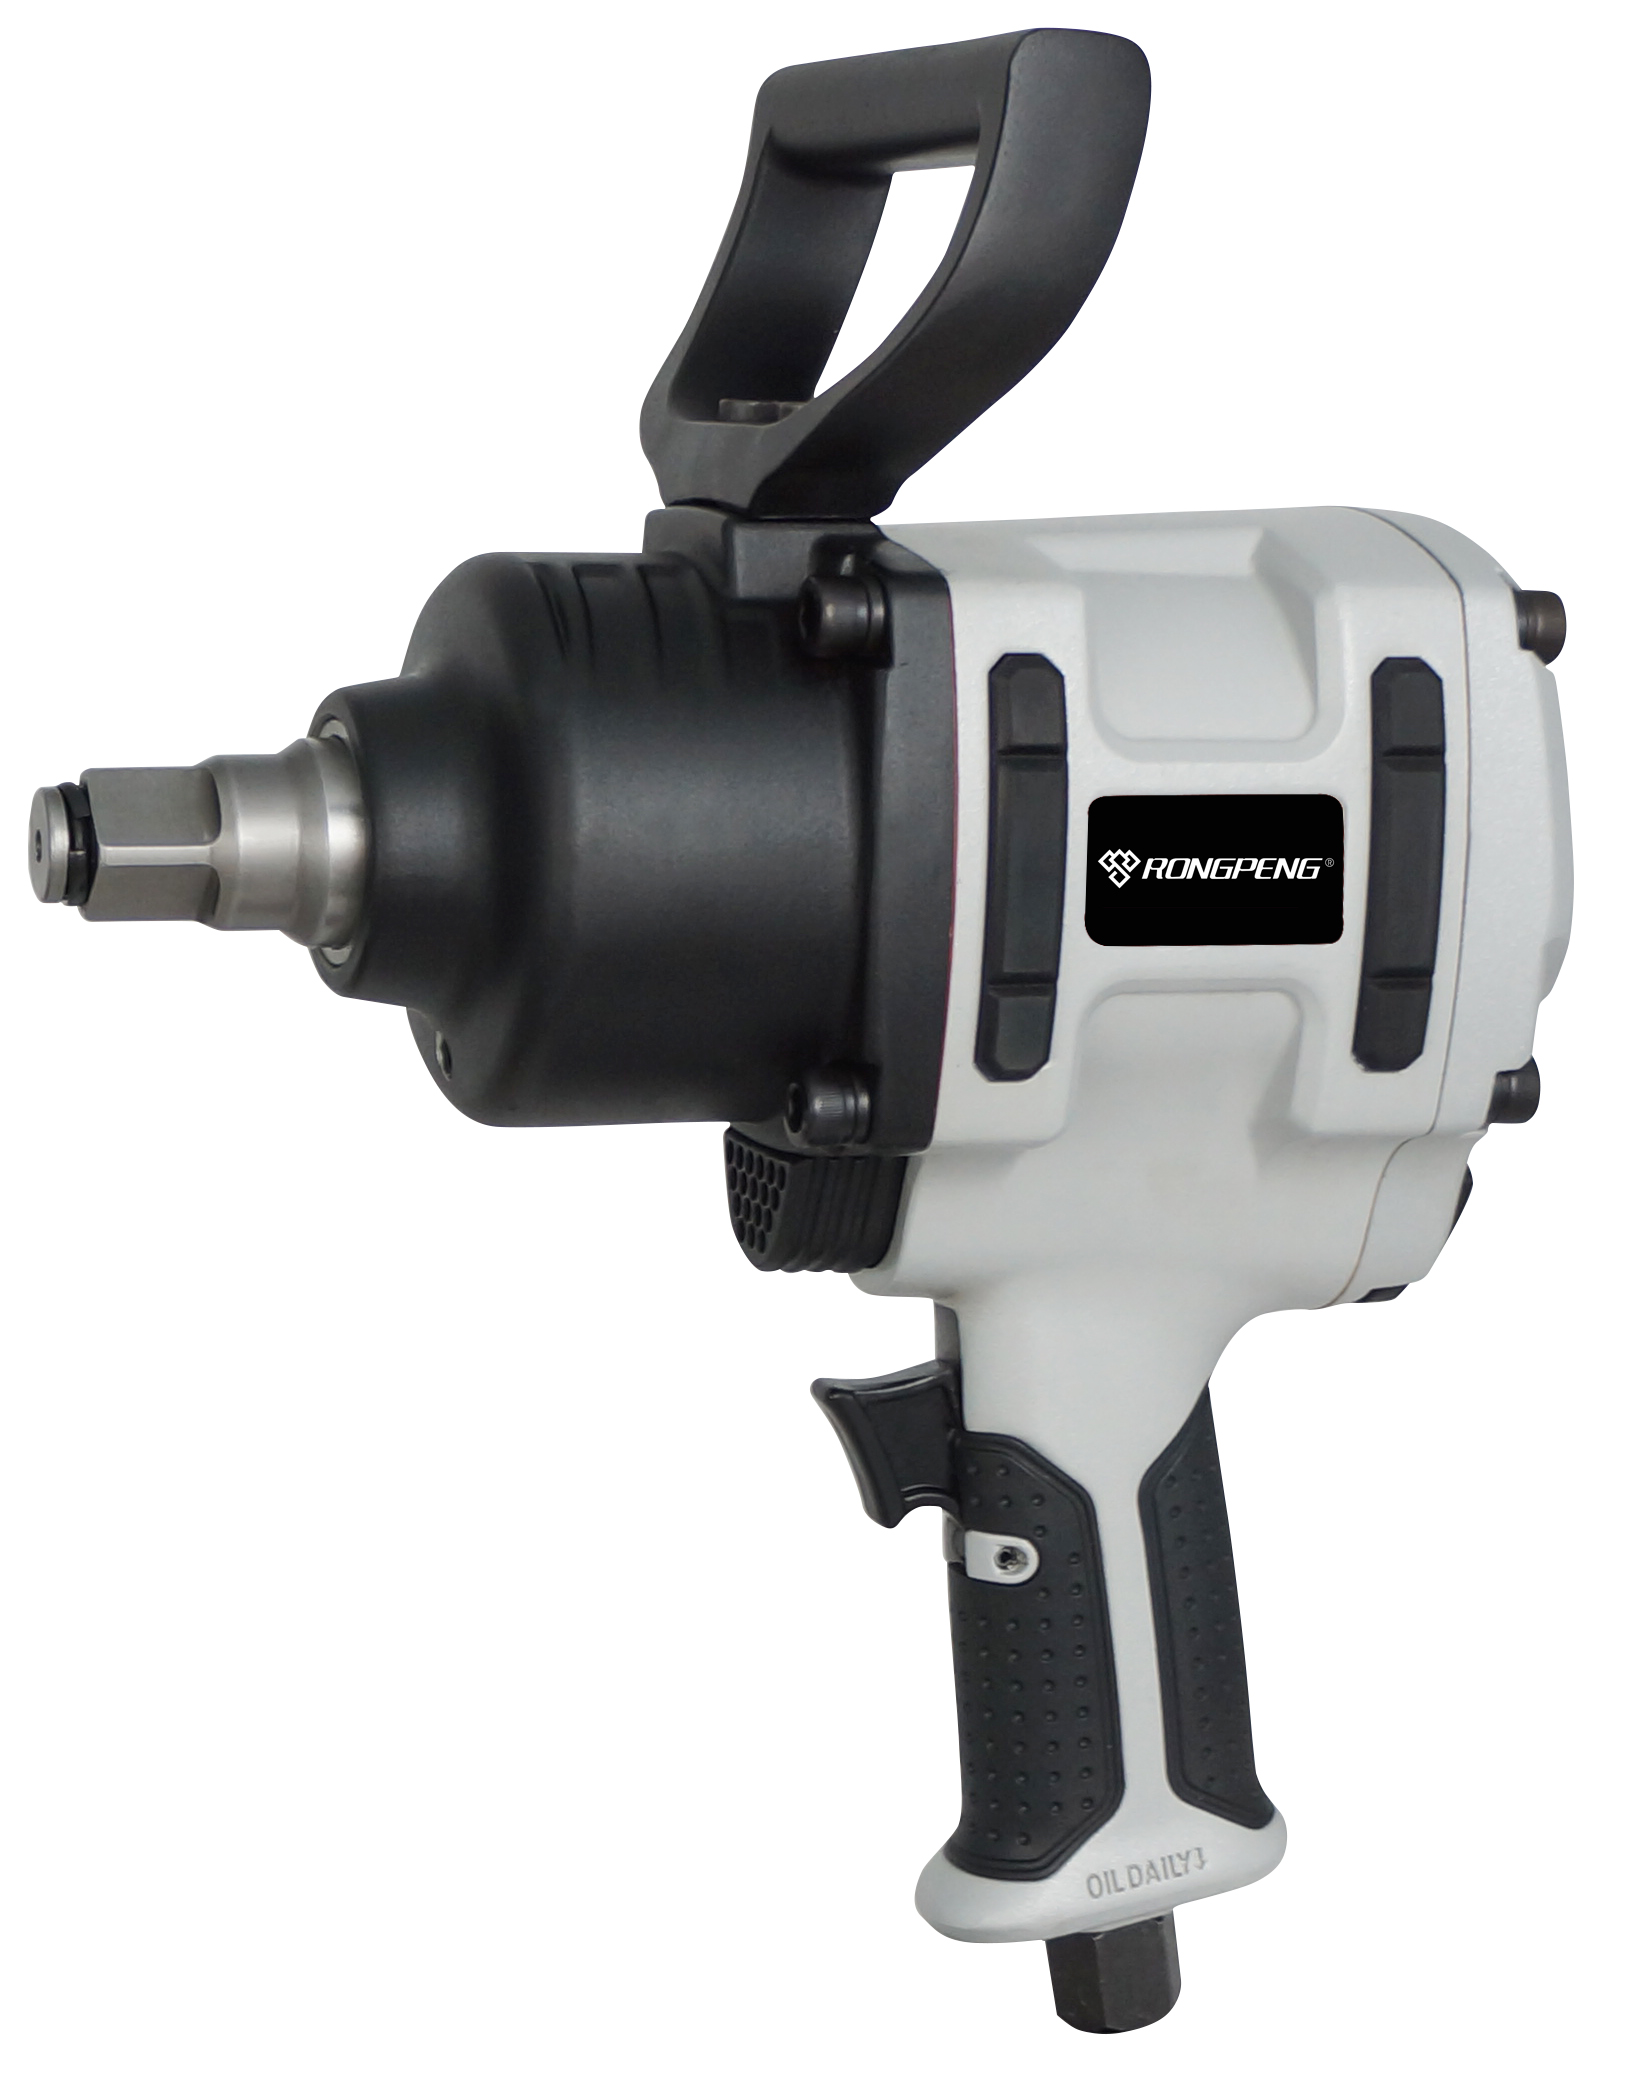 RP7462 - Ronpeng 3/4'' Sq. Dr. 1800Nm Air Impact Wrench